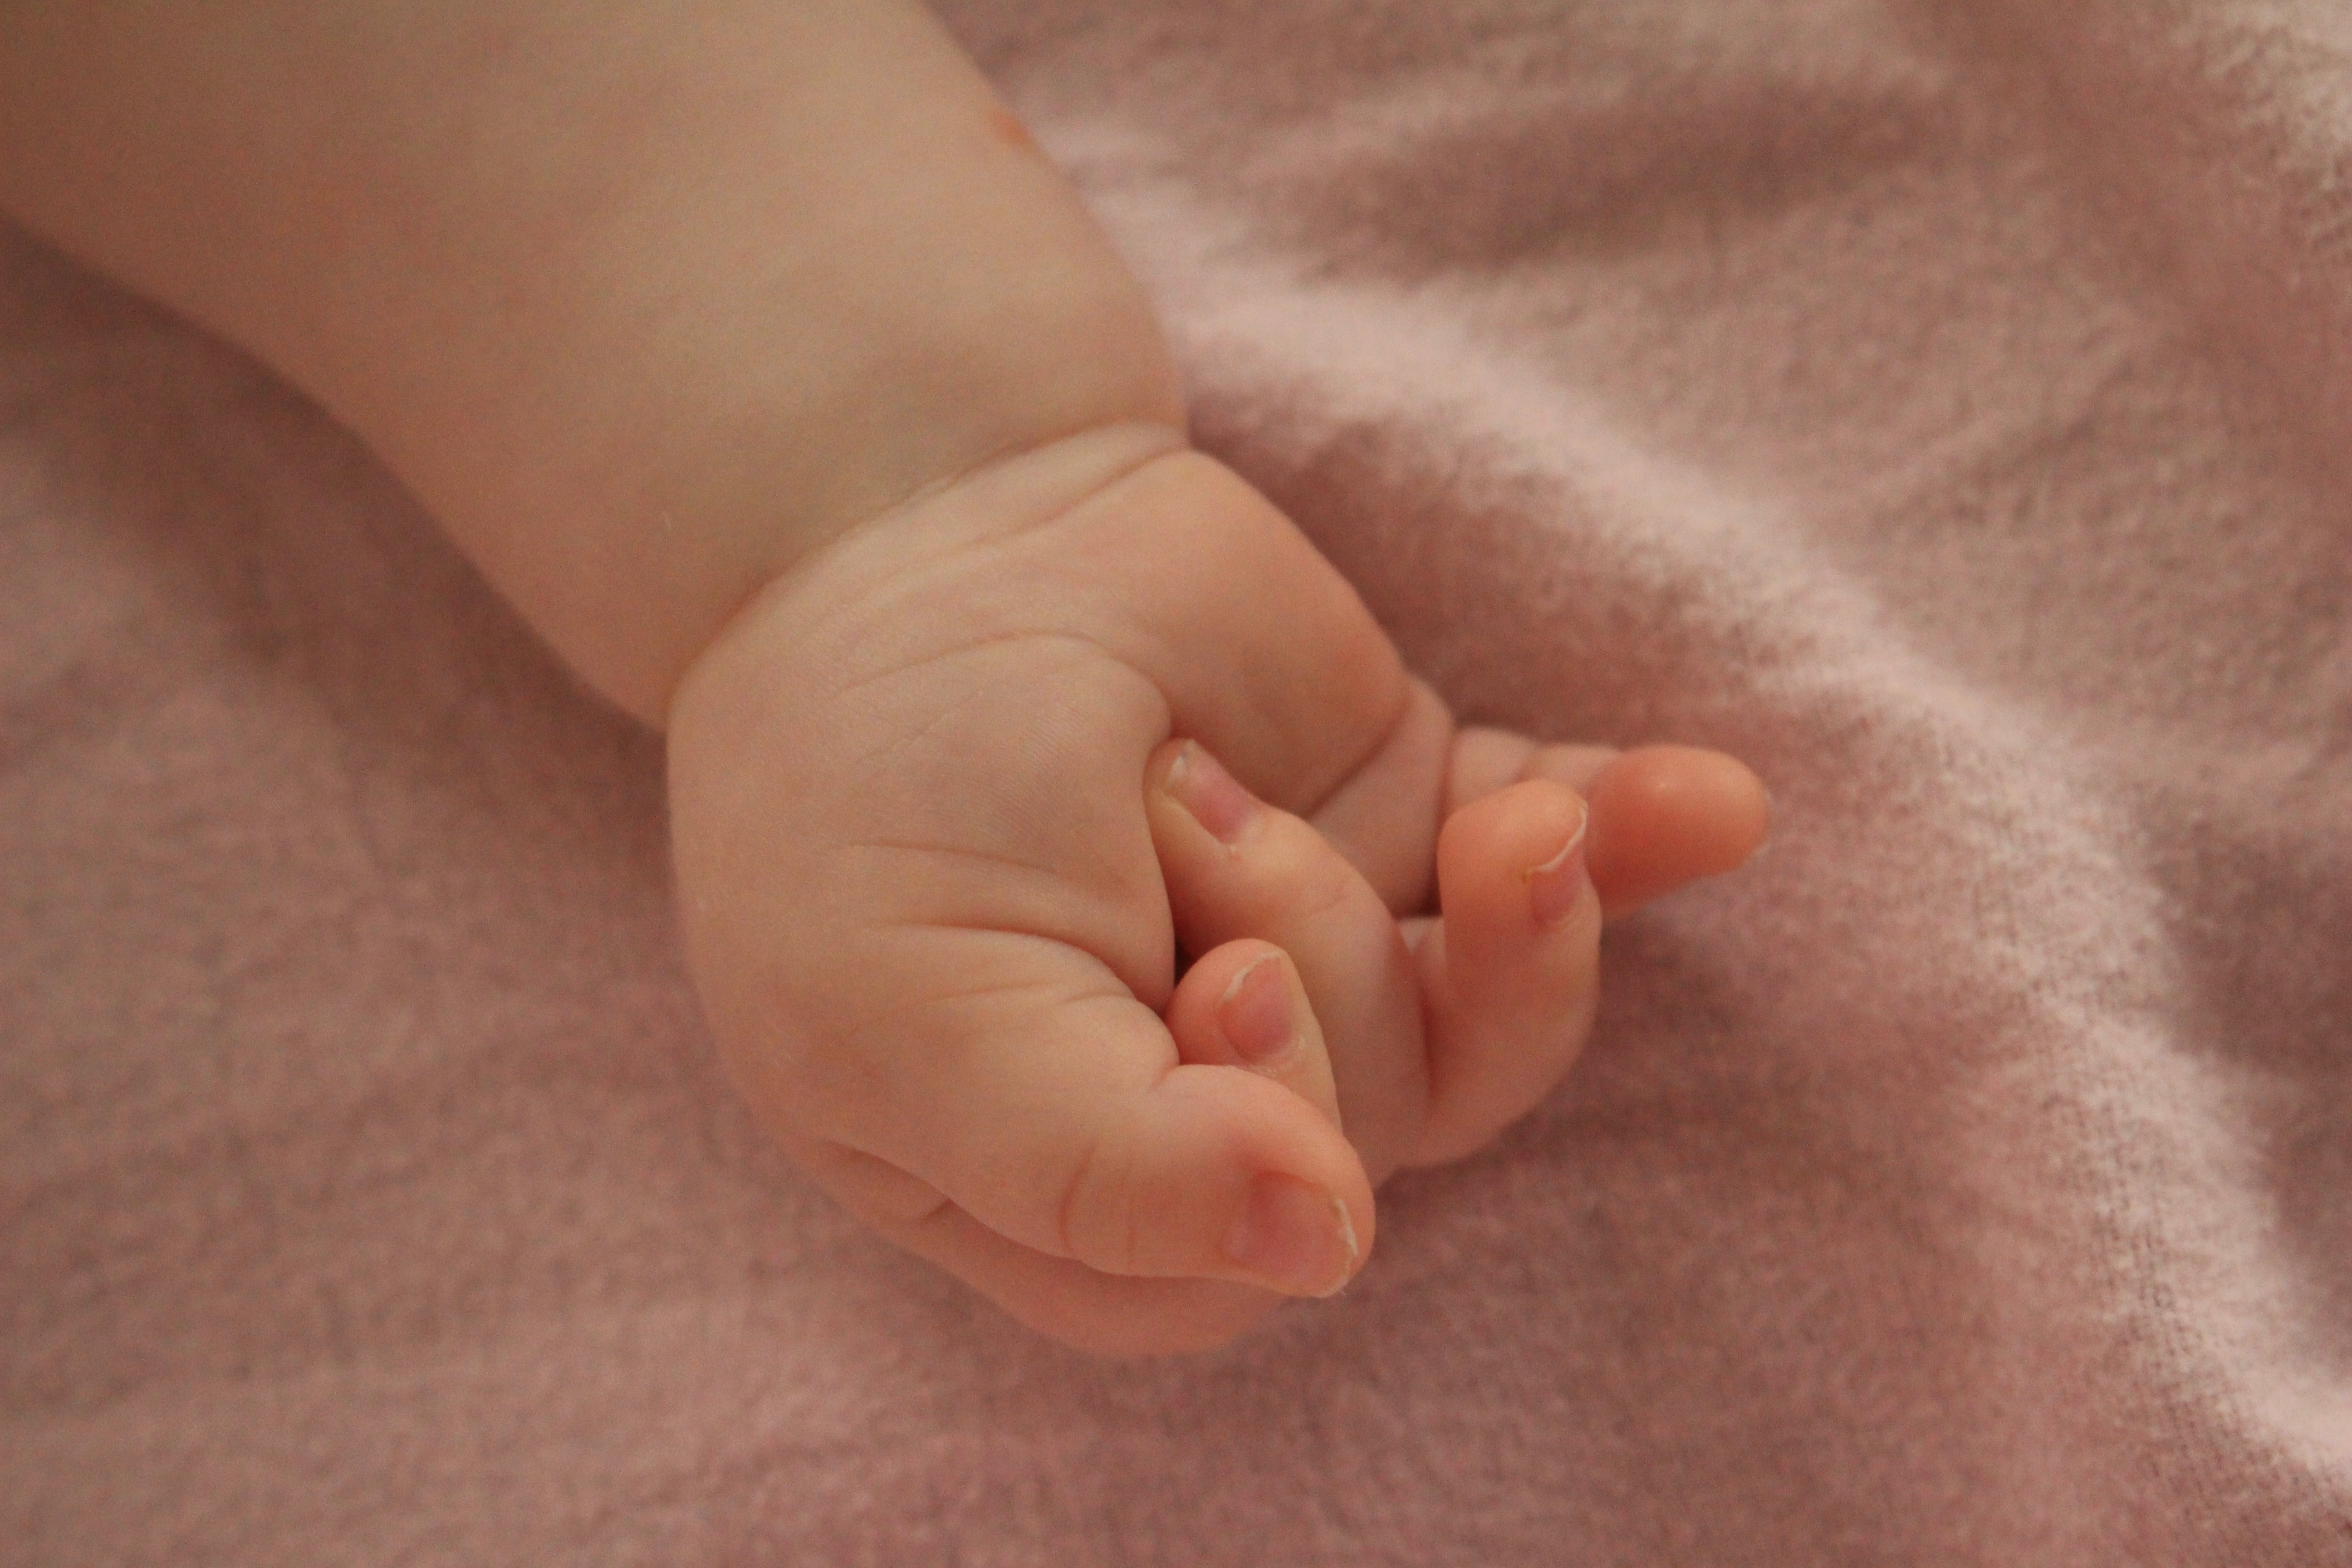 Close-up of baby's clenched hand on pink blanket